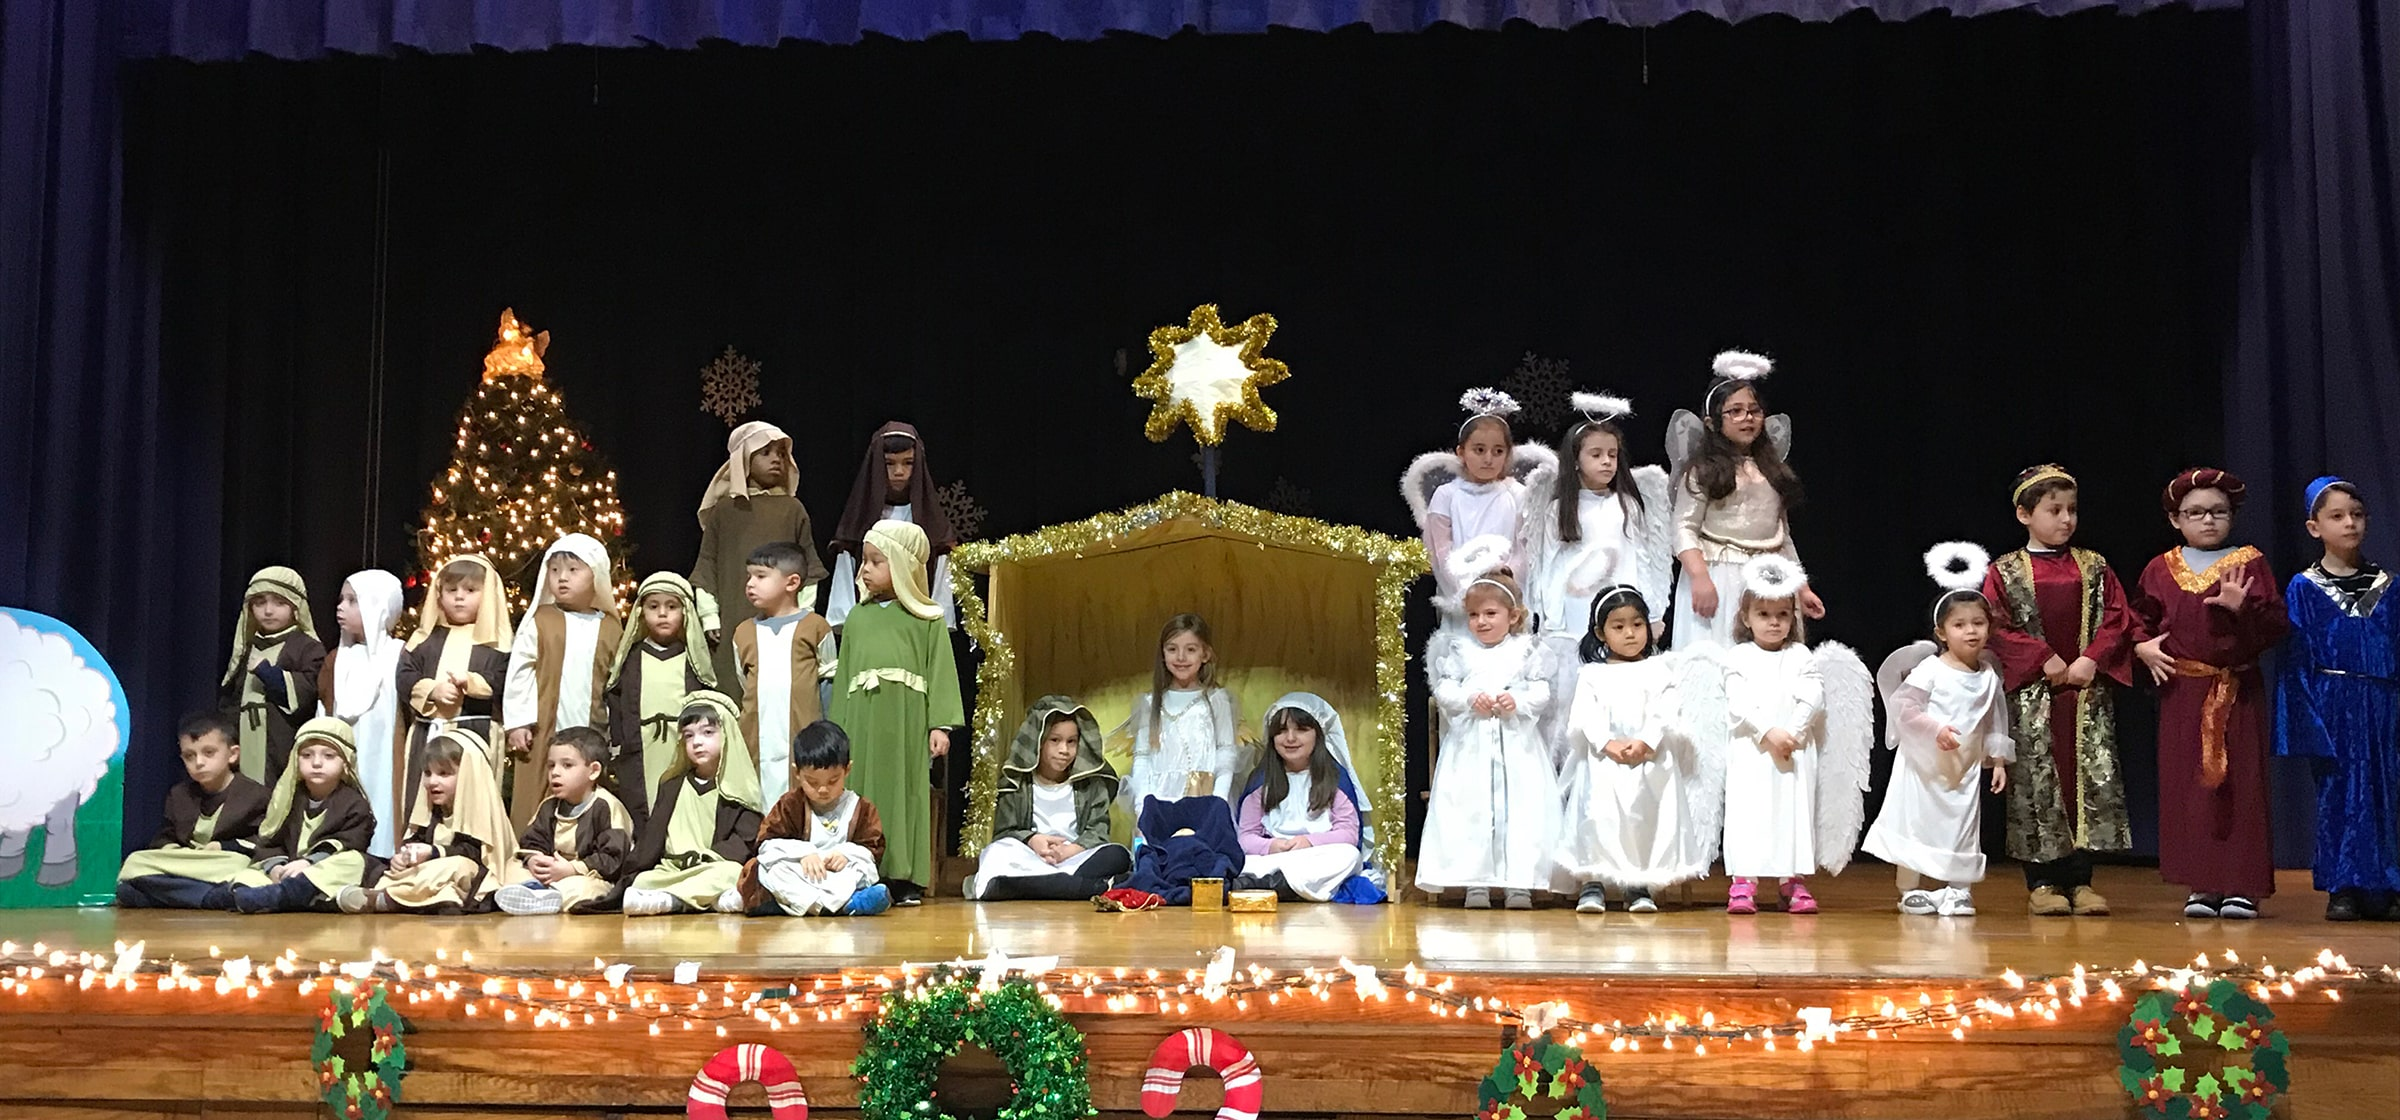 Our Lady of Grace Catholic Academy Christmas pageant